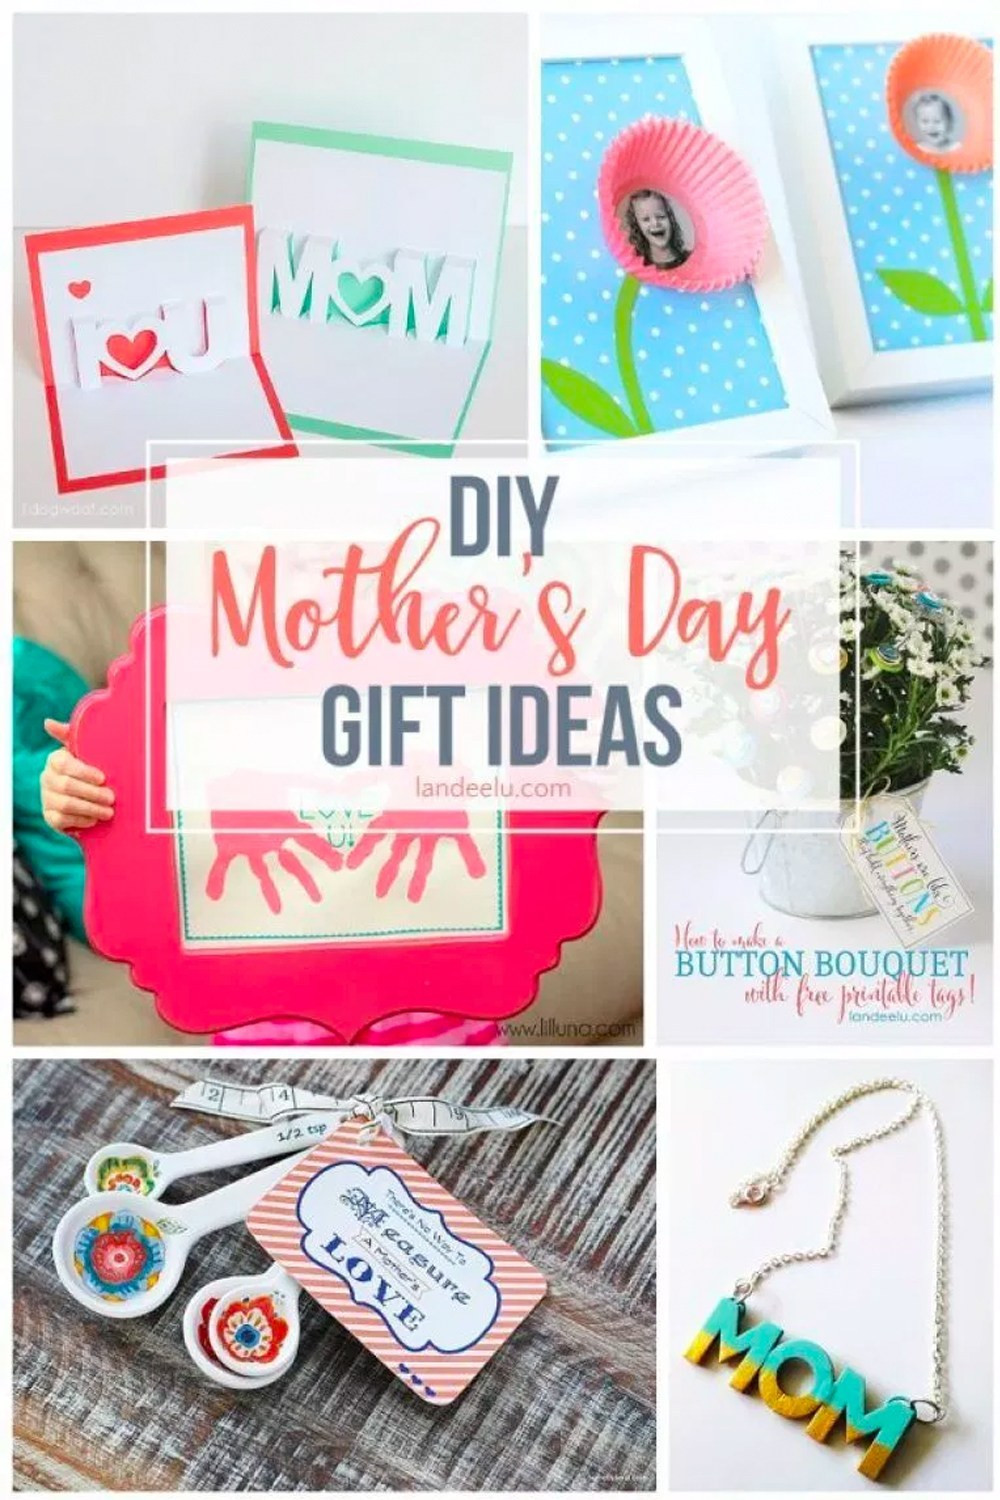 Best ideas about DIY Mother'S Day Gifts . Save or Pin DIY Mothers Day Gift Ideas landeelu Now.